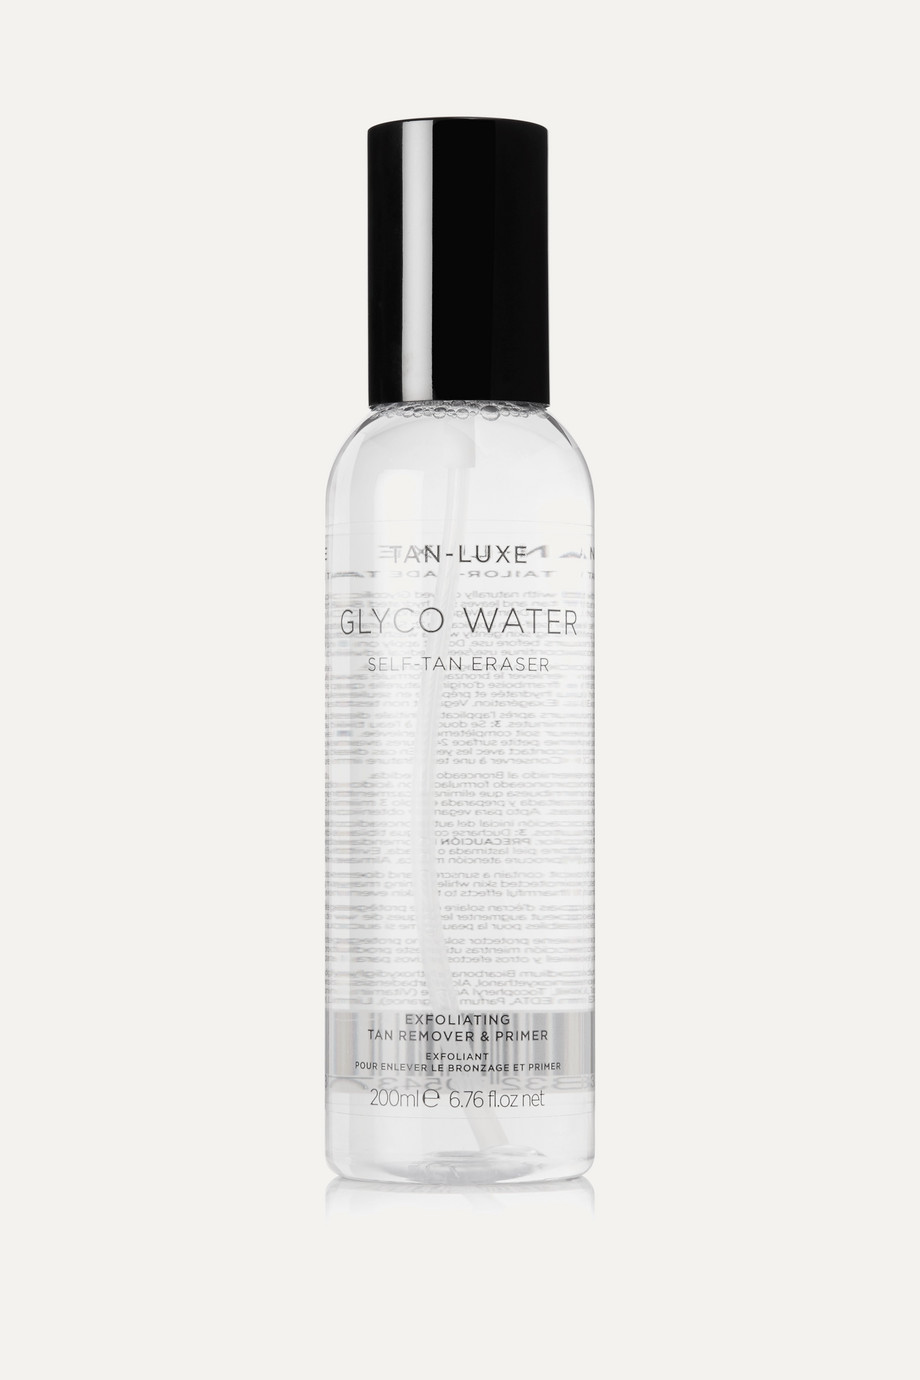 TAN-LUXE Glyco Water, 200ml